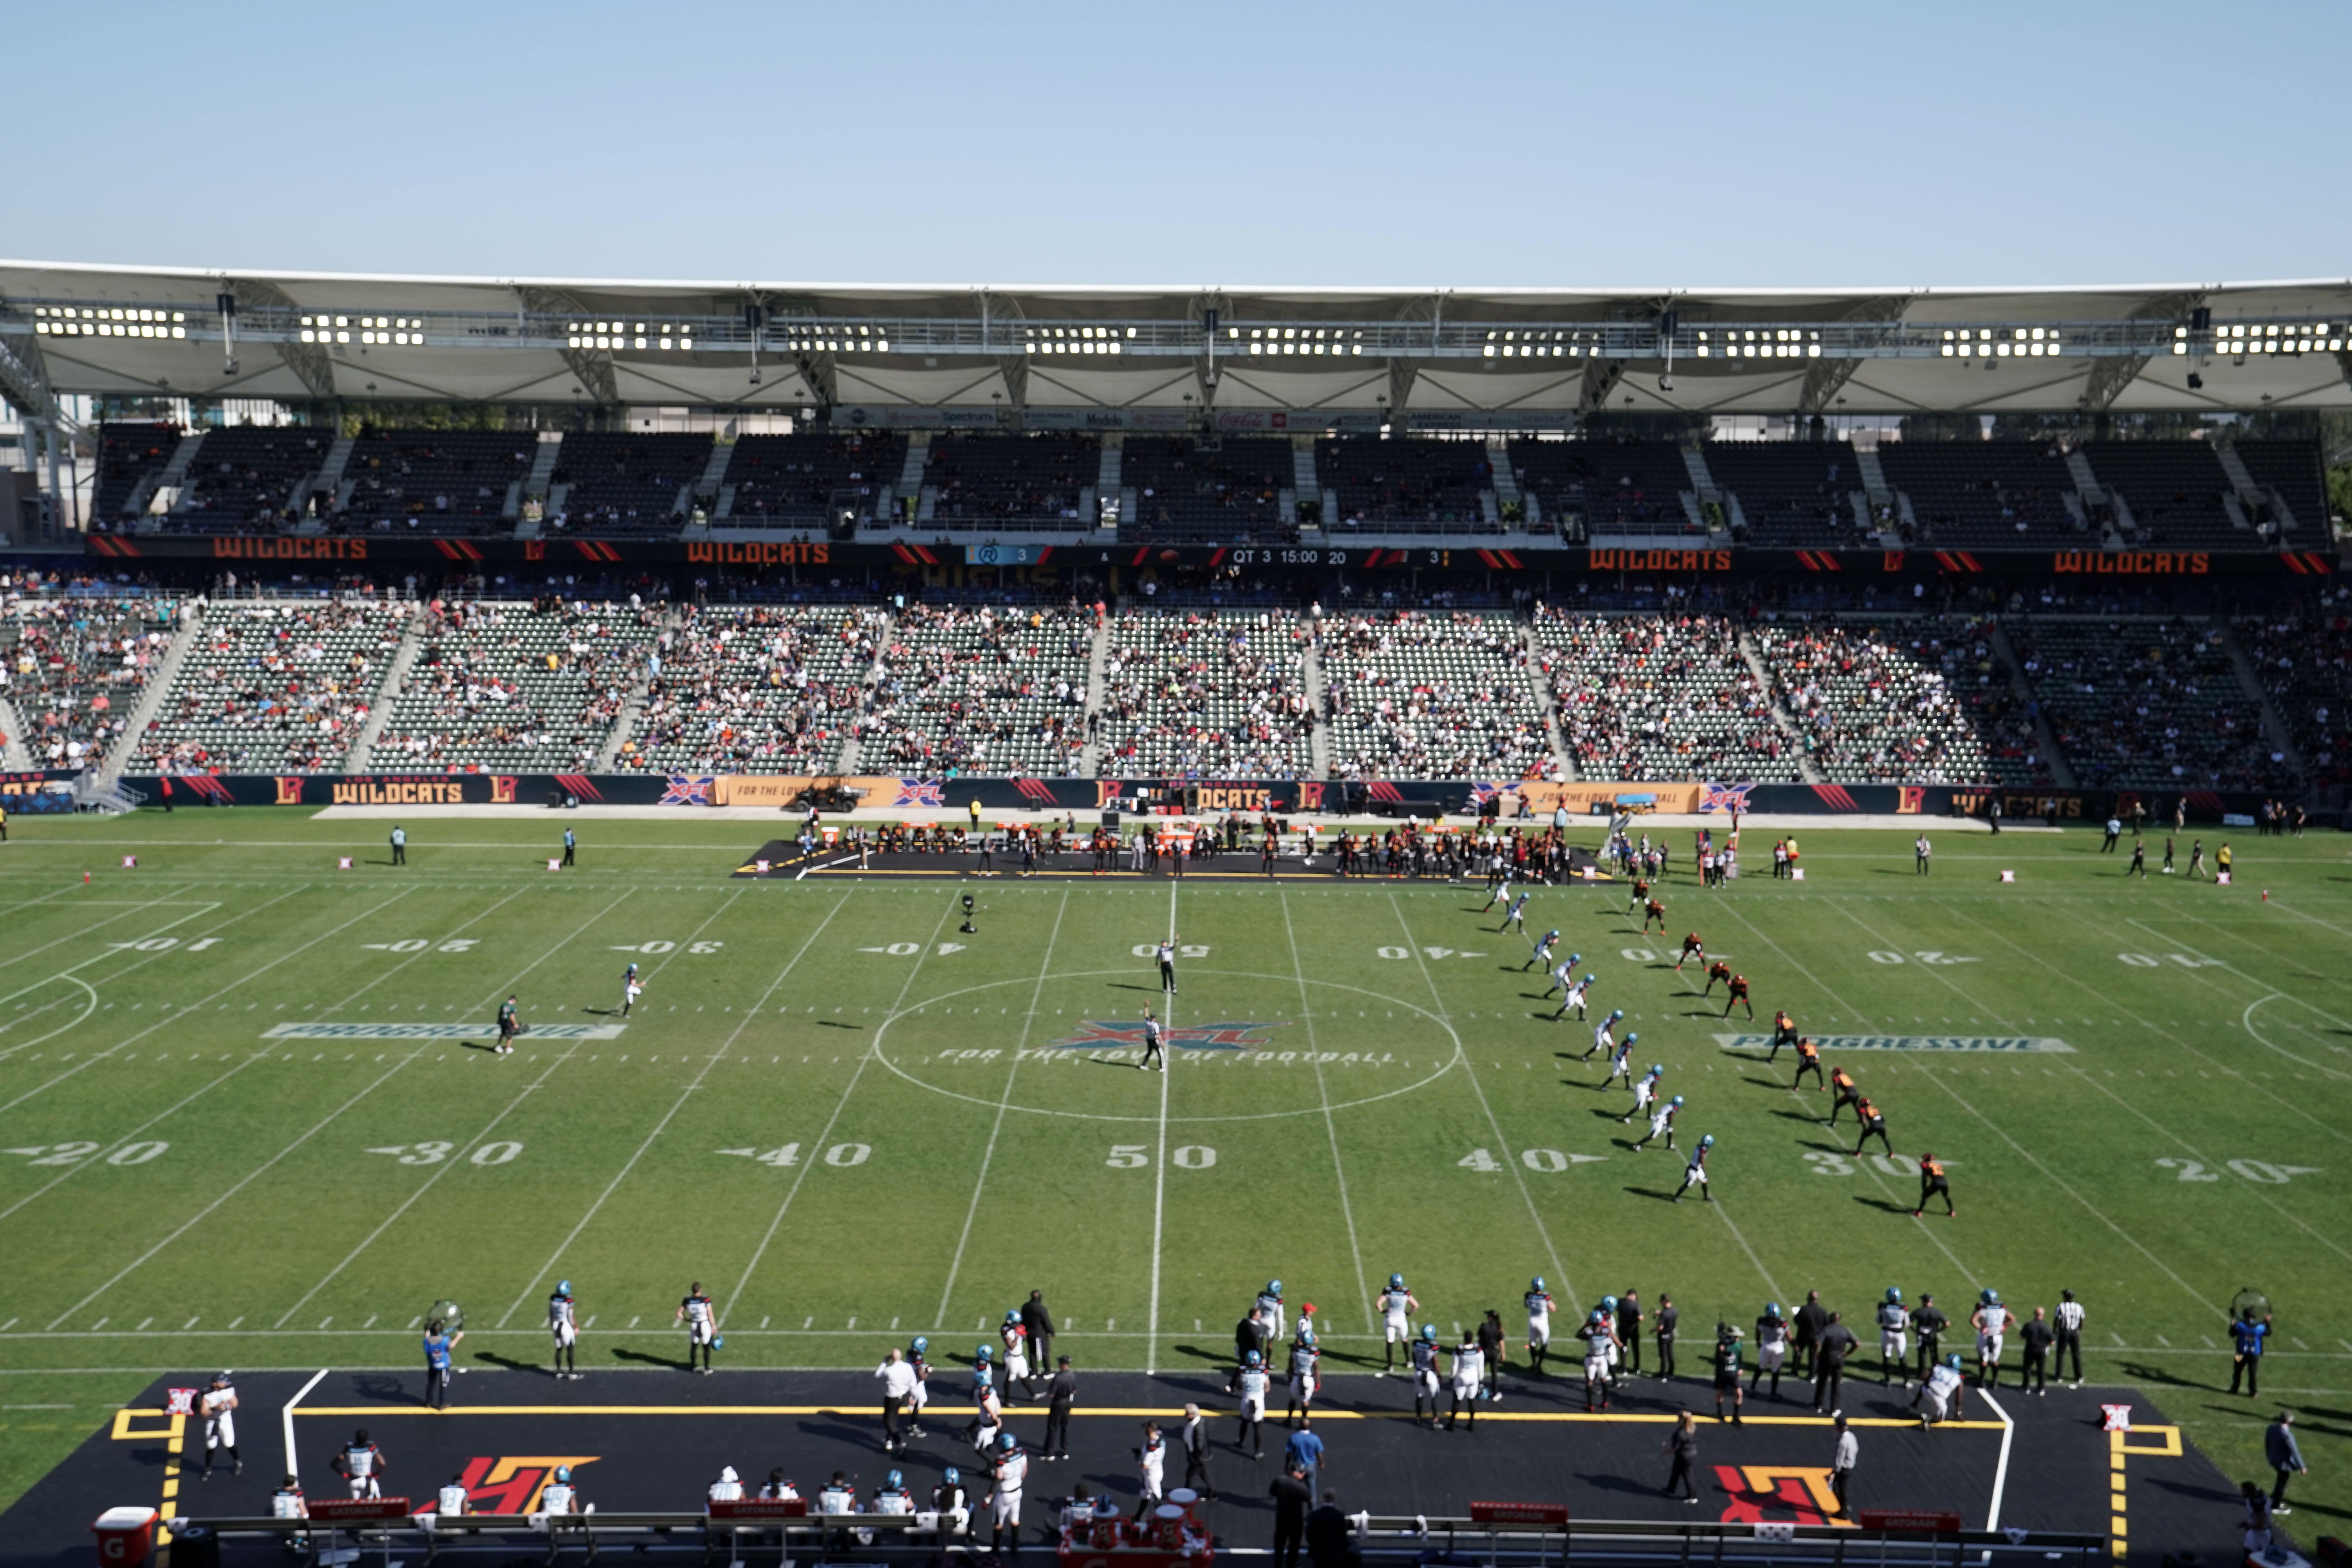 General overall view of kickoff at the start of the second half of the XFL game between the LA Wildcats and the Dallas Renegades Dignity Health Sports Park.